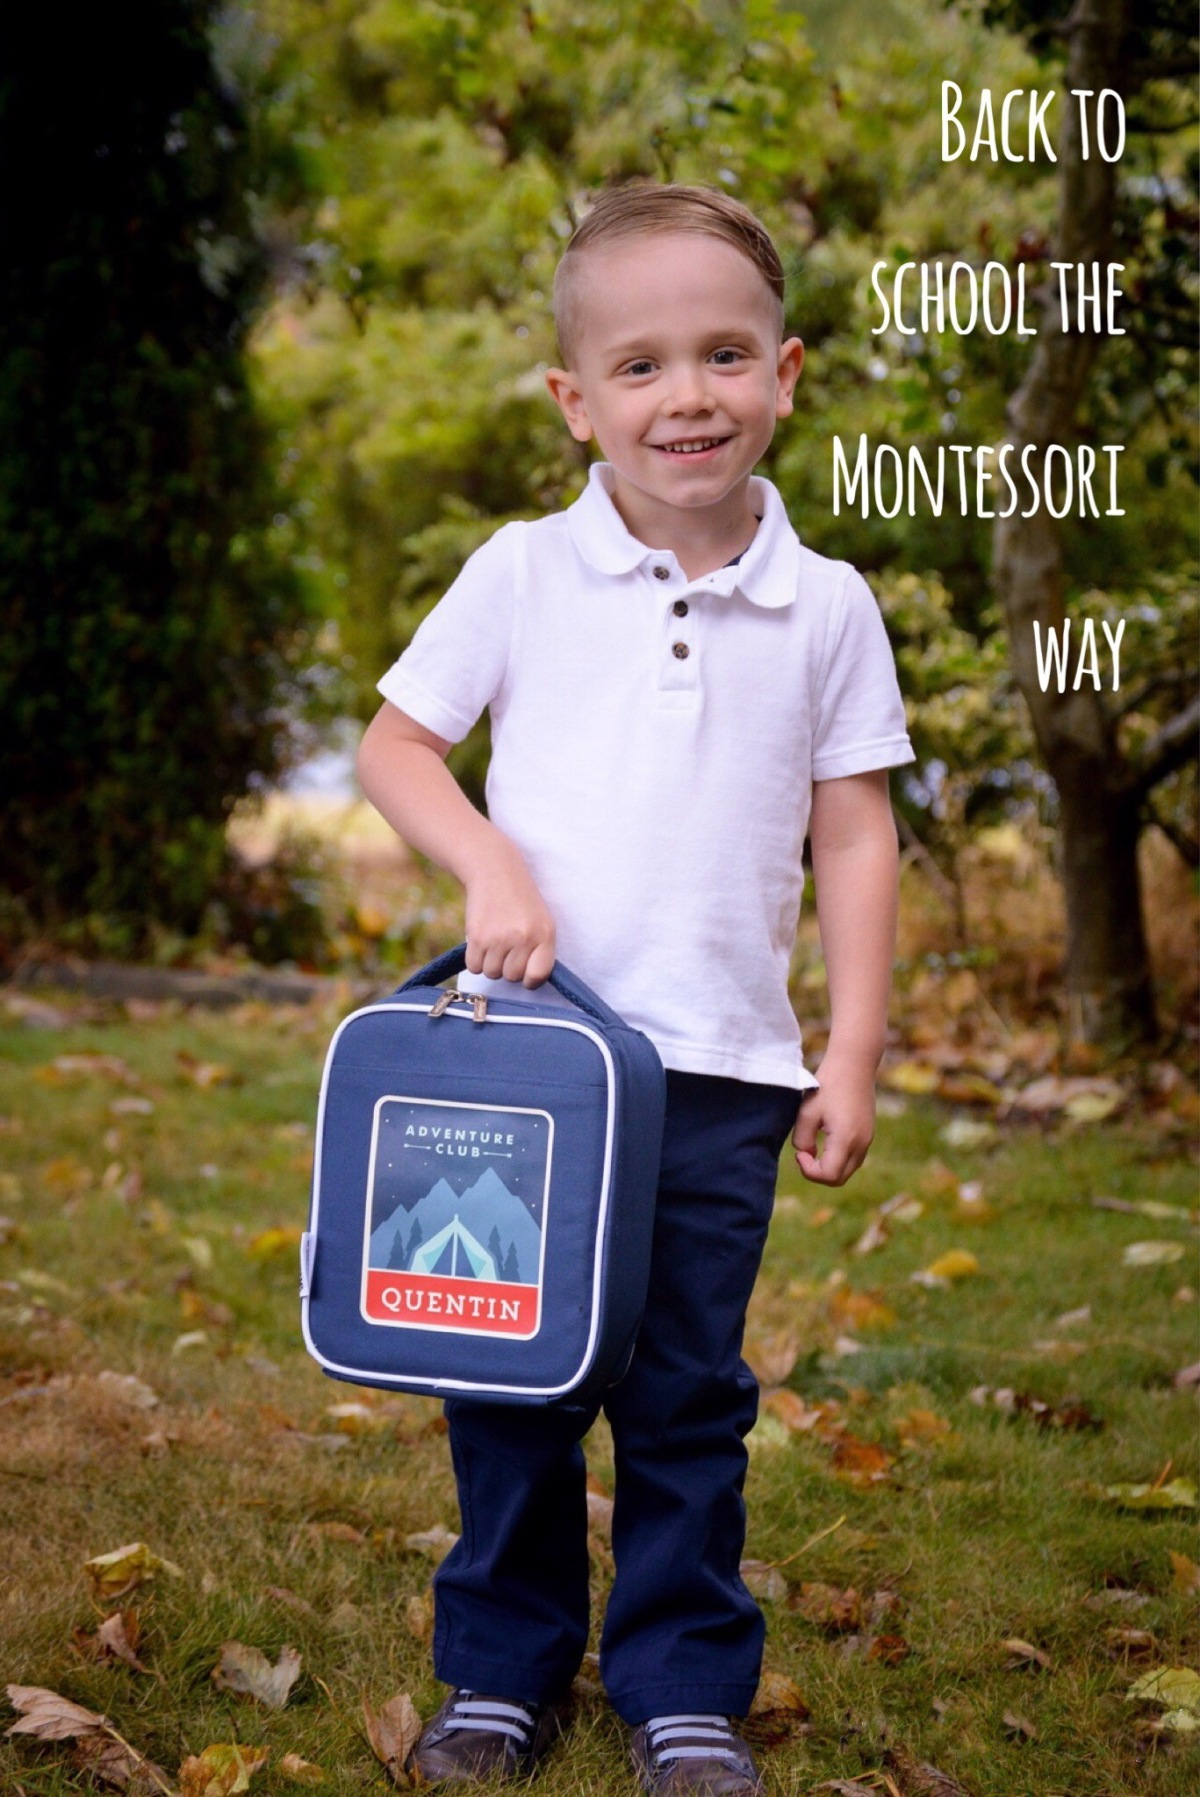 Back to school the Montessori way – Part 2: Routines